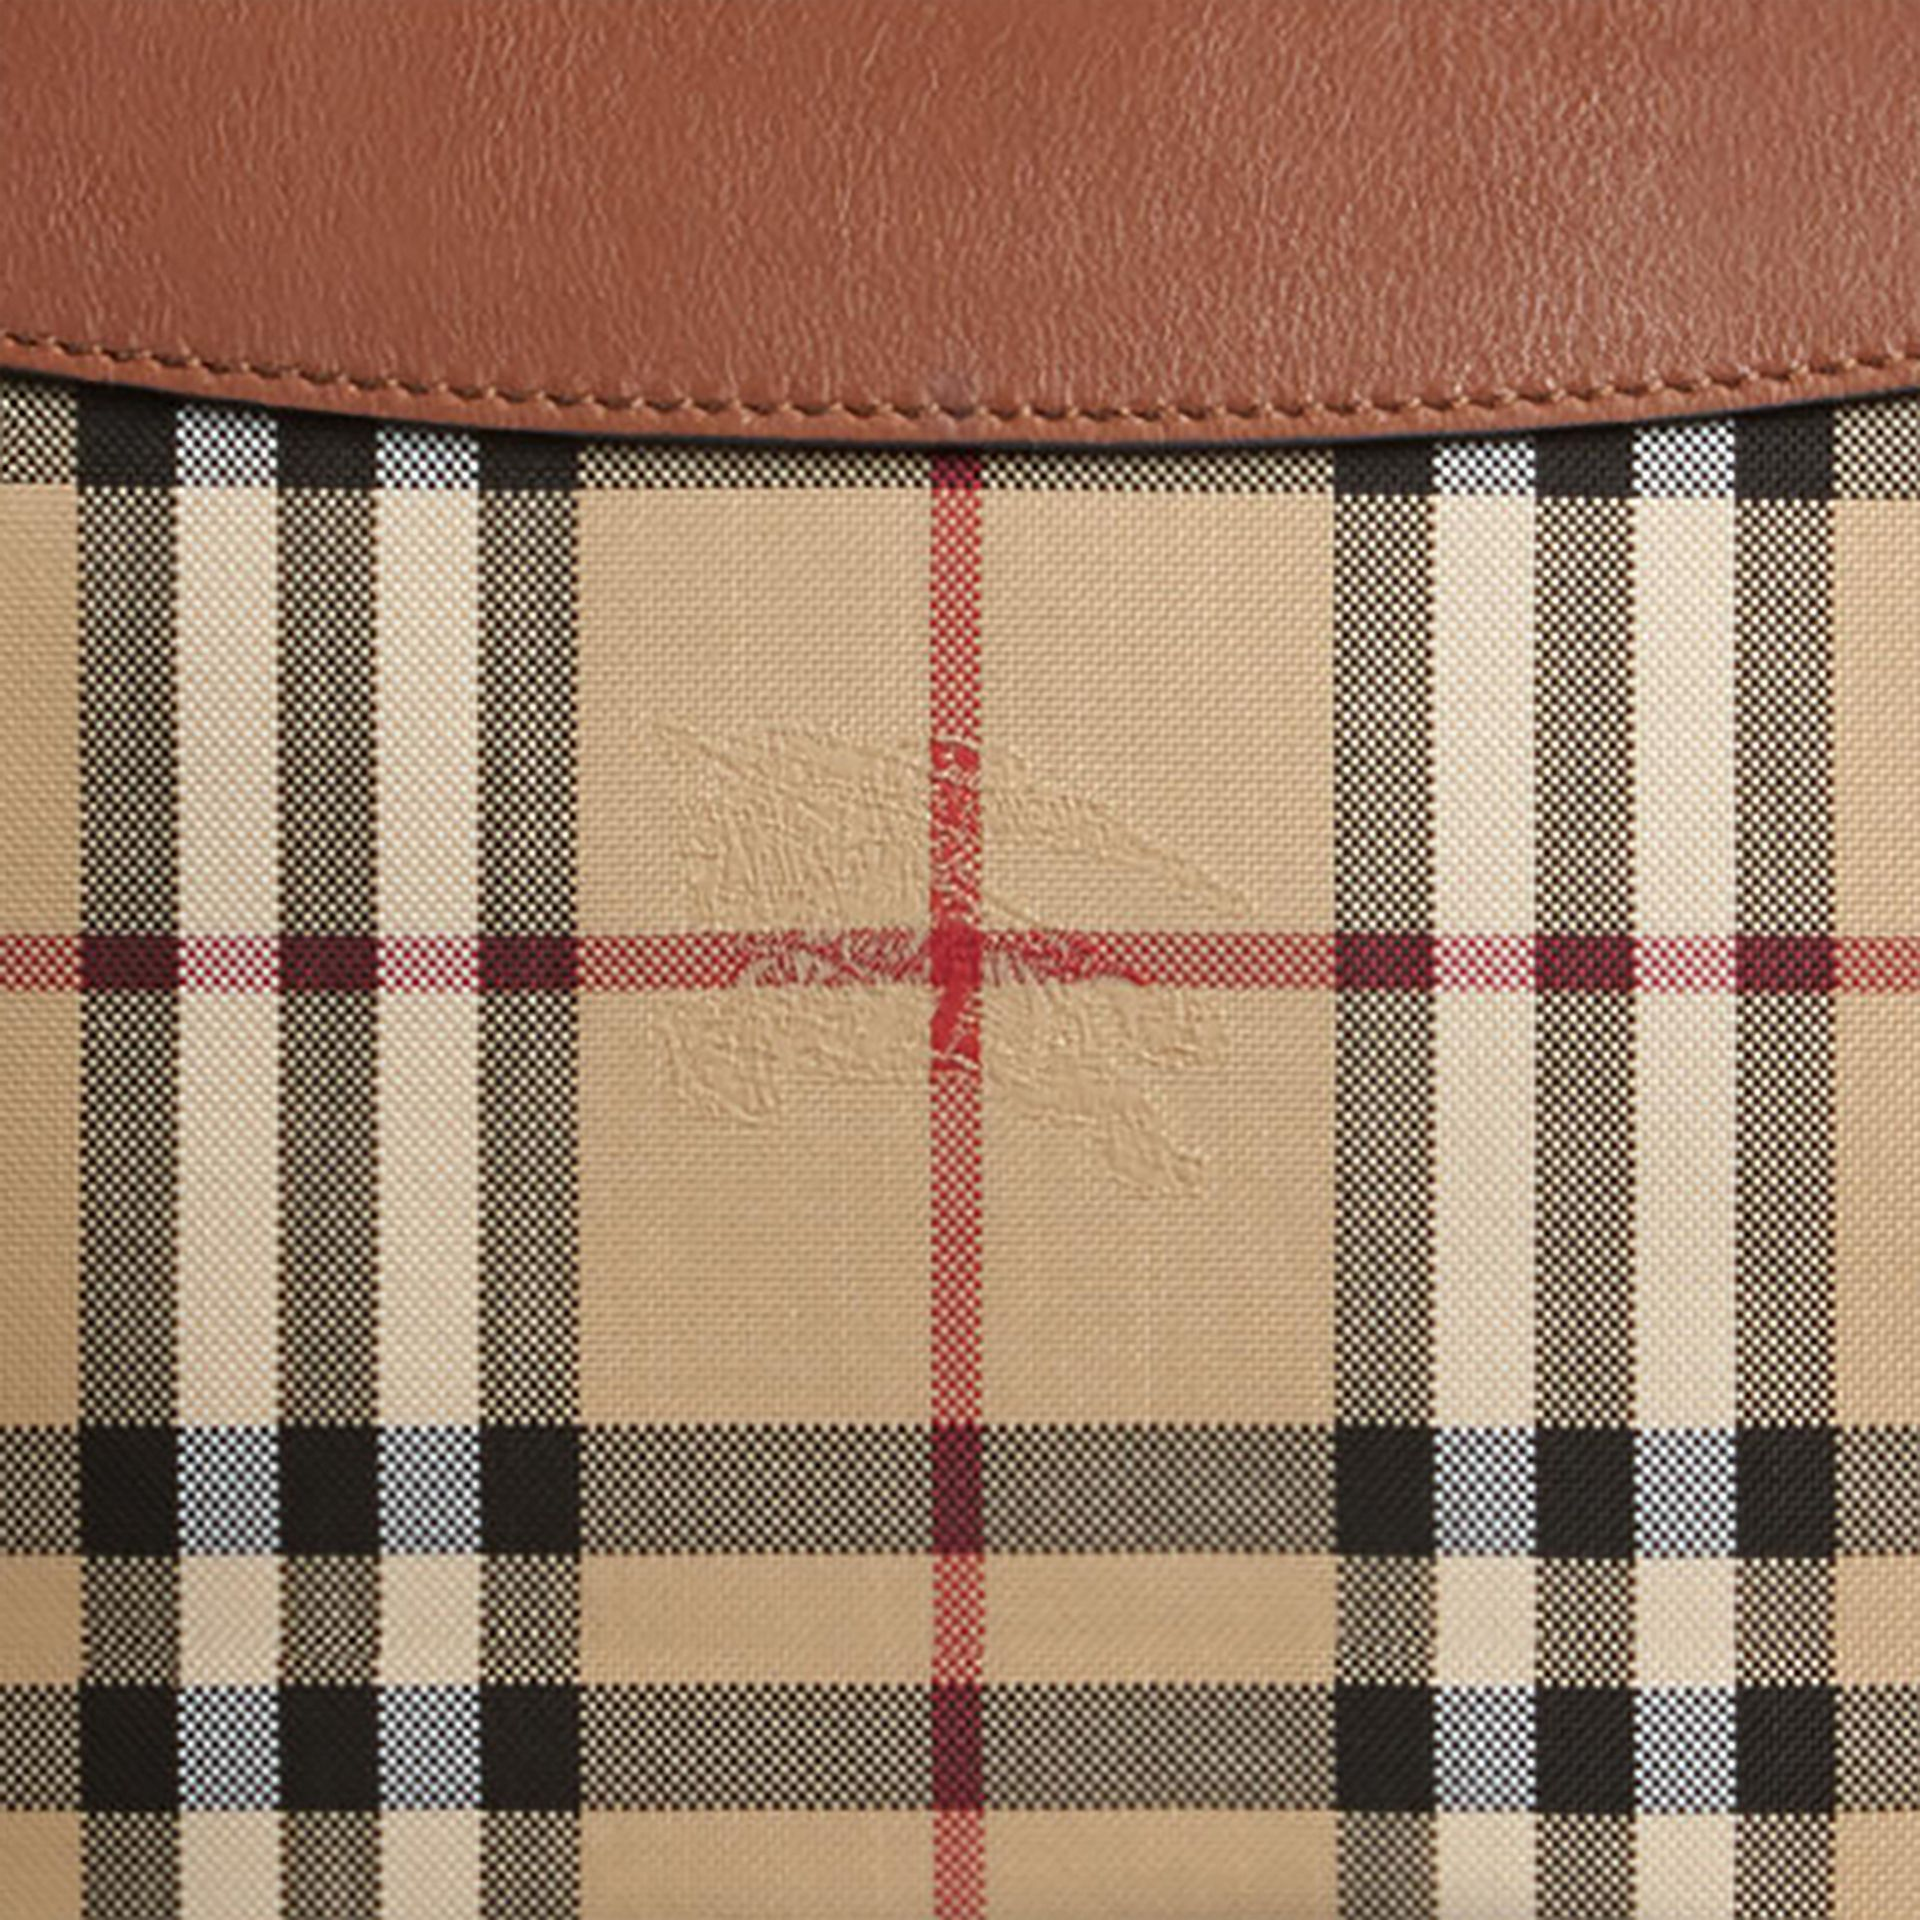 Horseferry Check and Leather Clutch Bag in Tan - Women | Burberry Singapore - gallery image 2